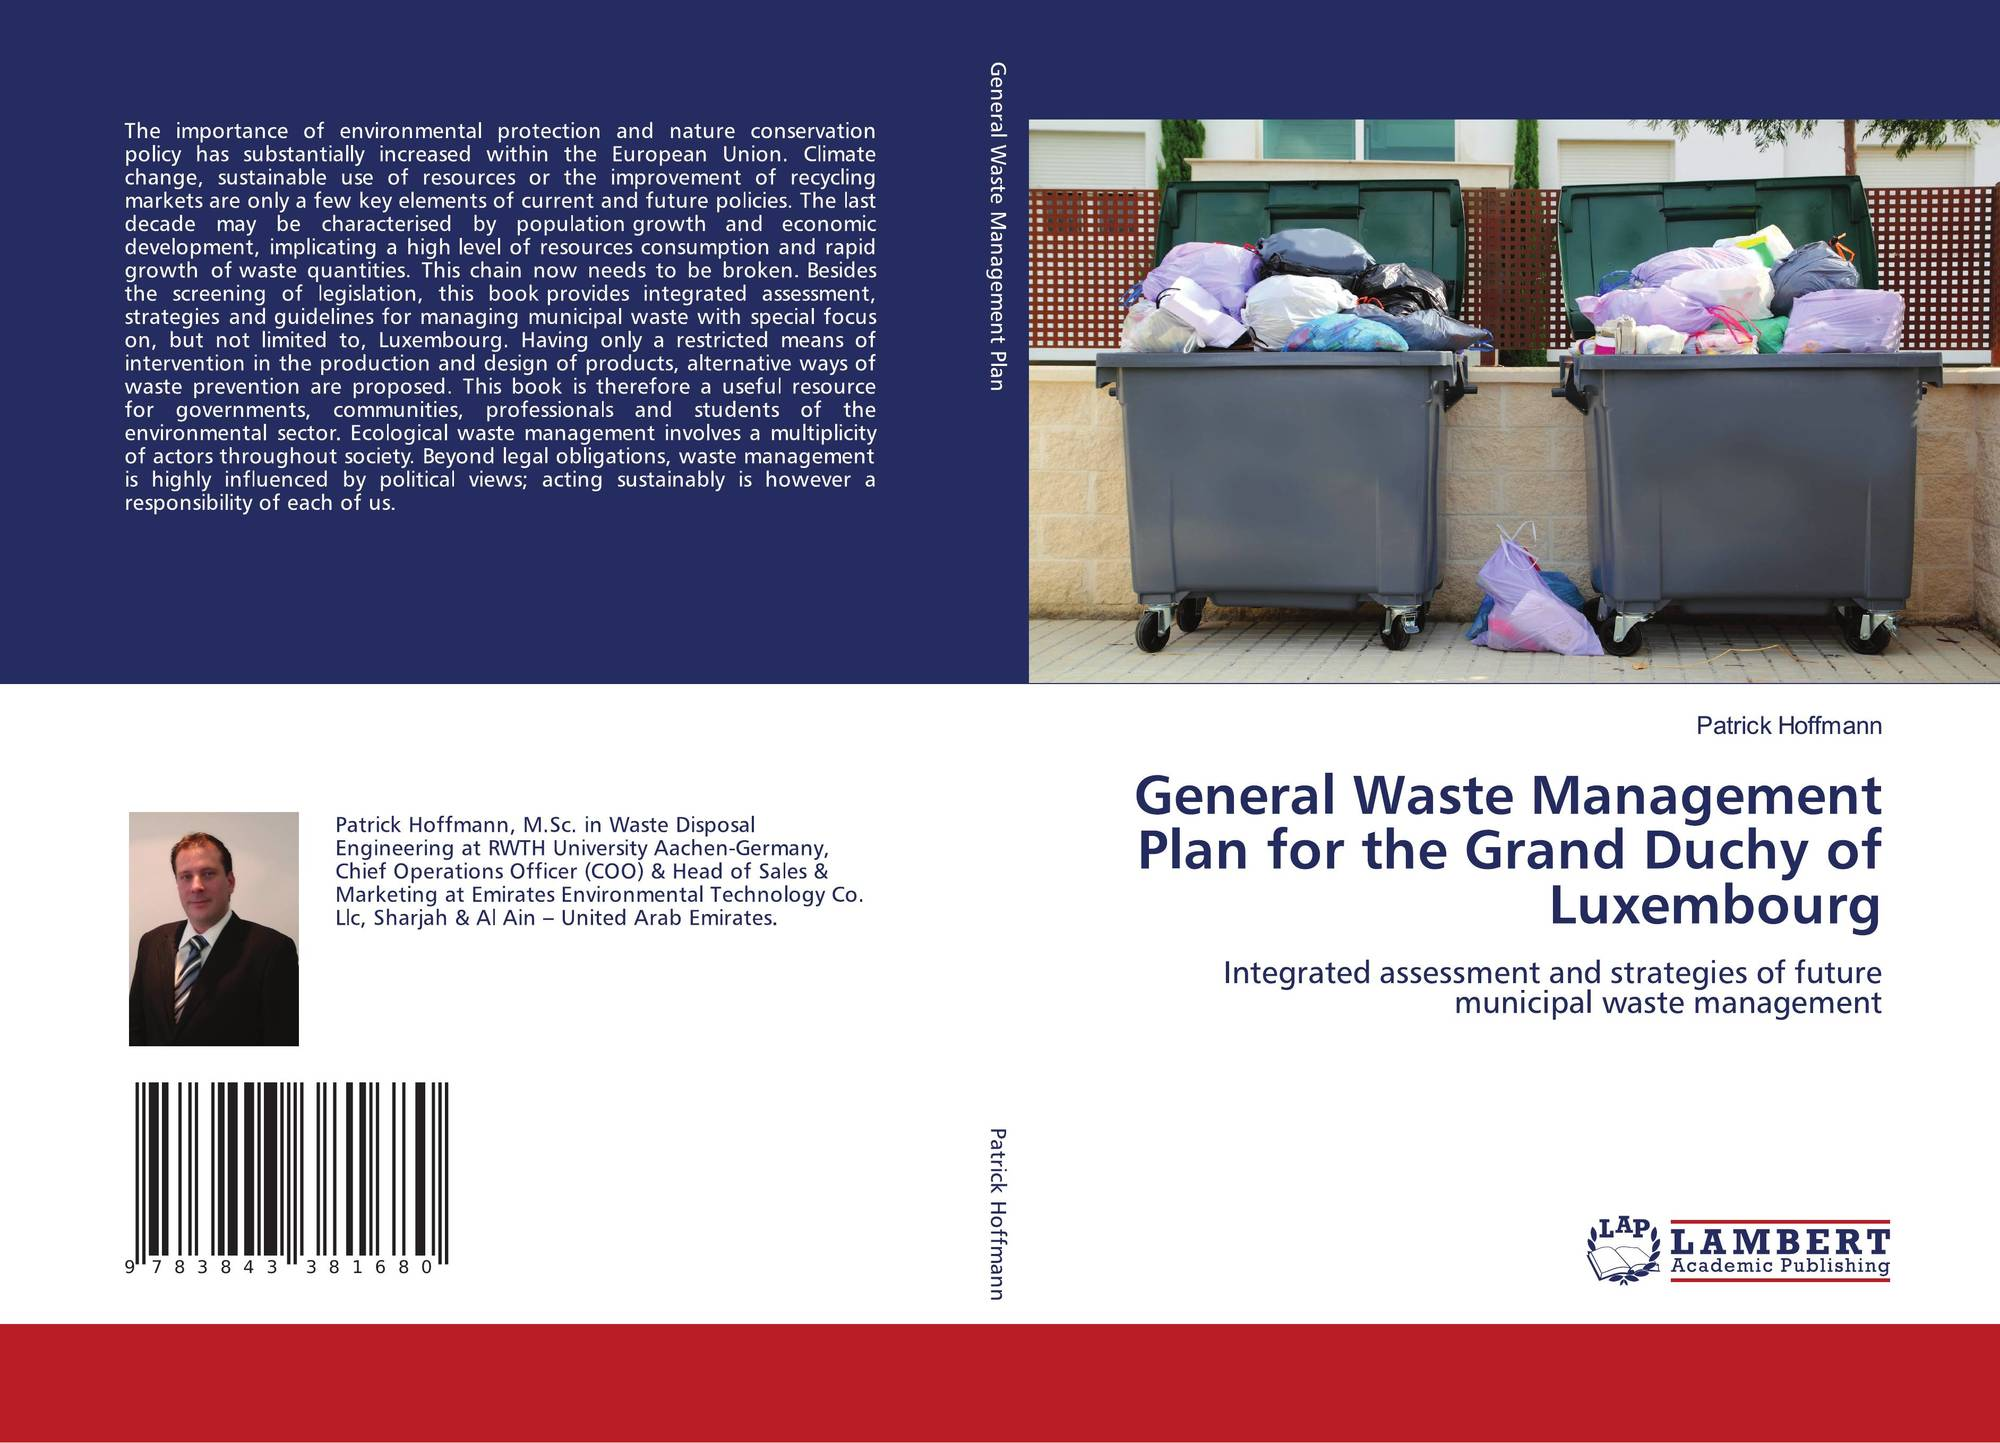 General Waste Management Plan for the Grand Duchy of